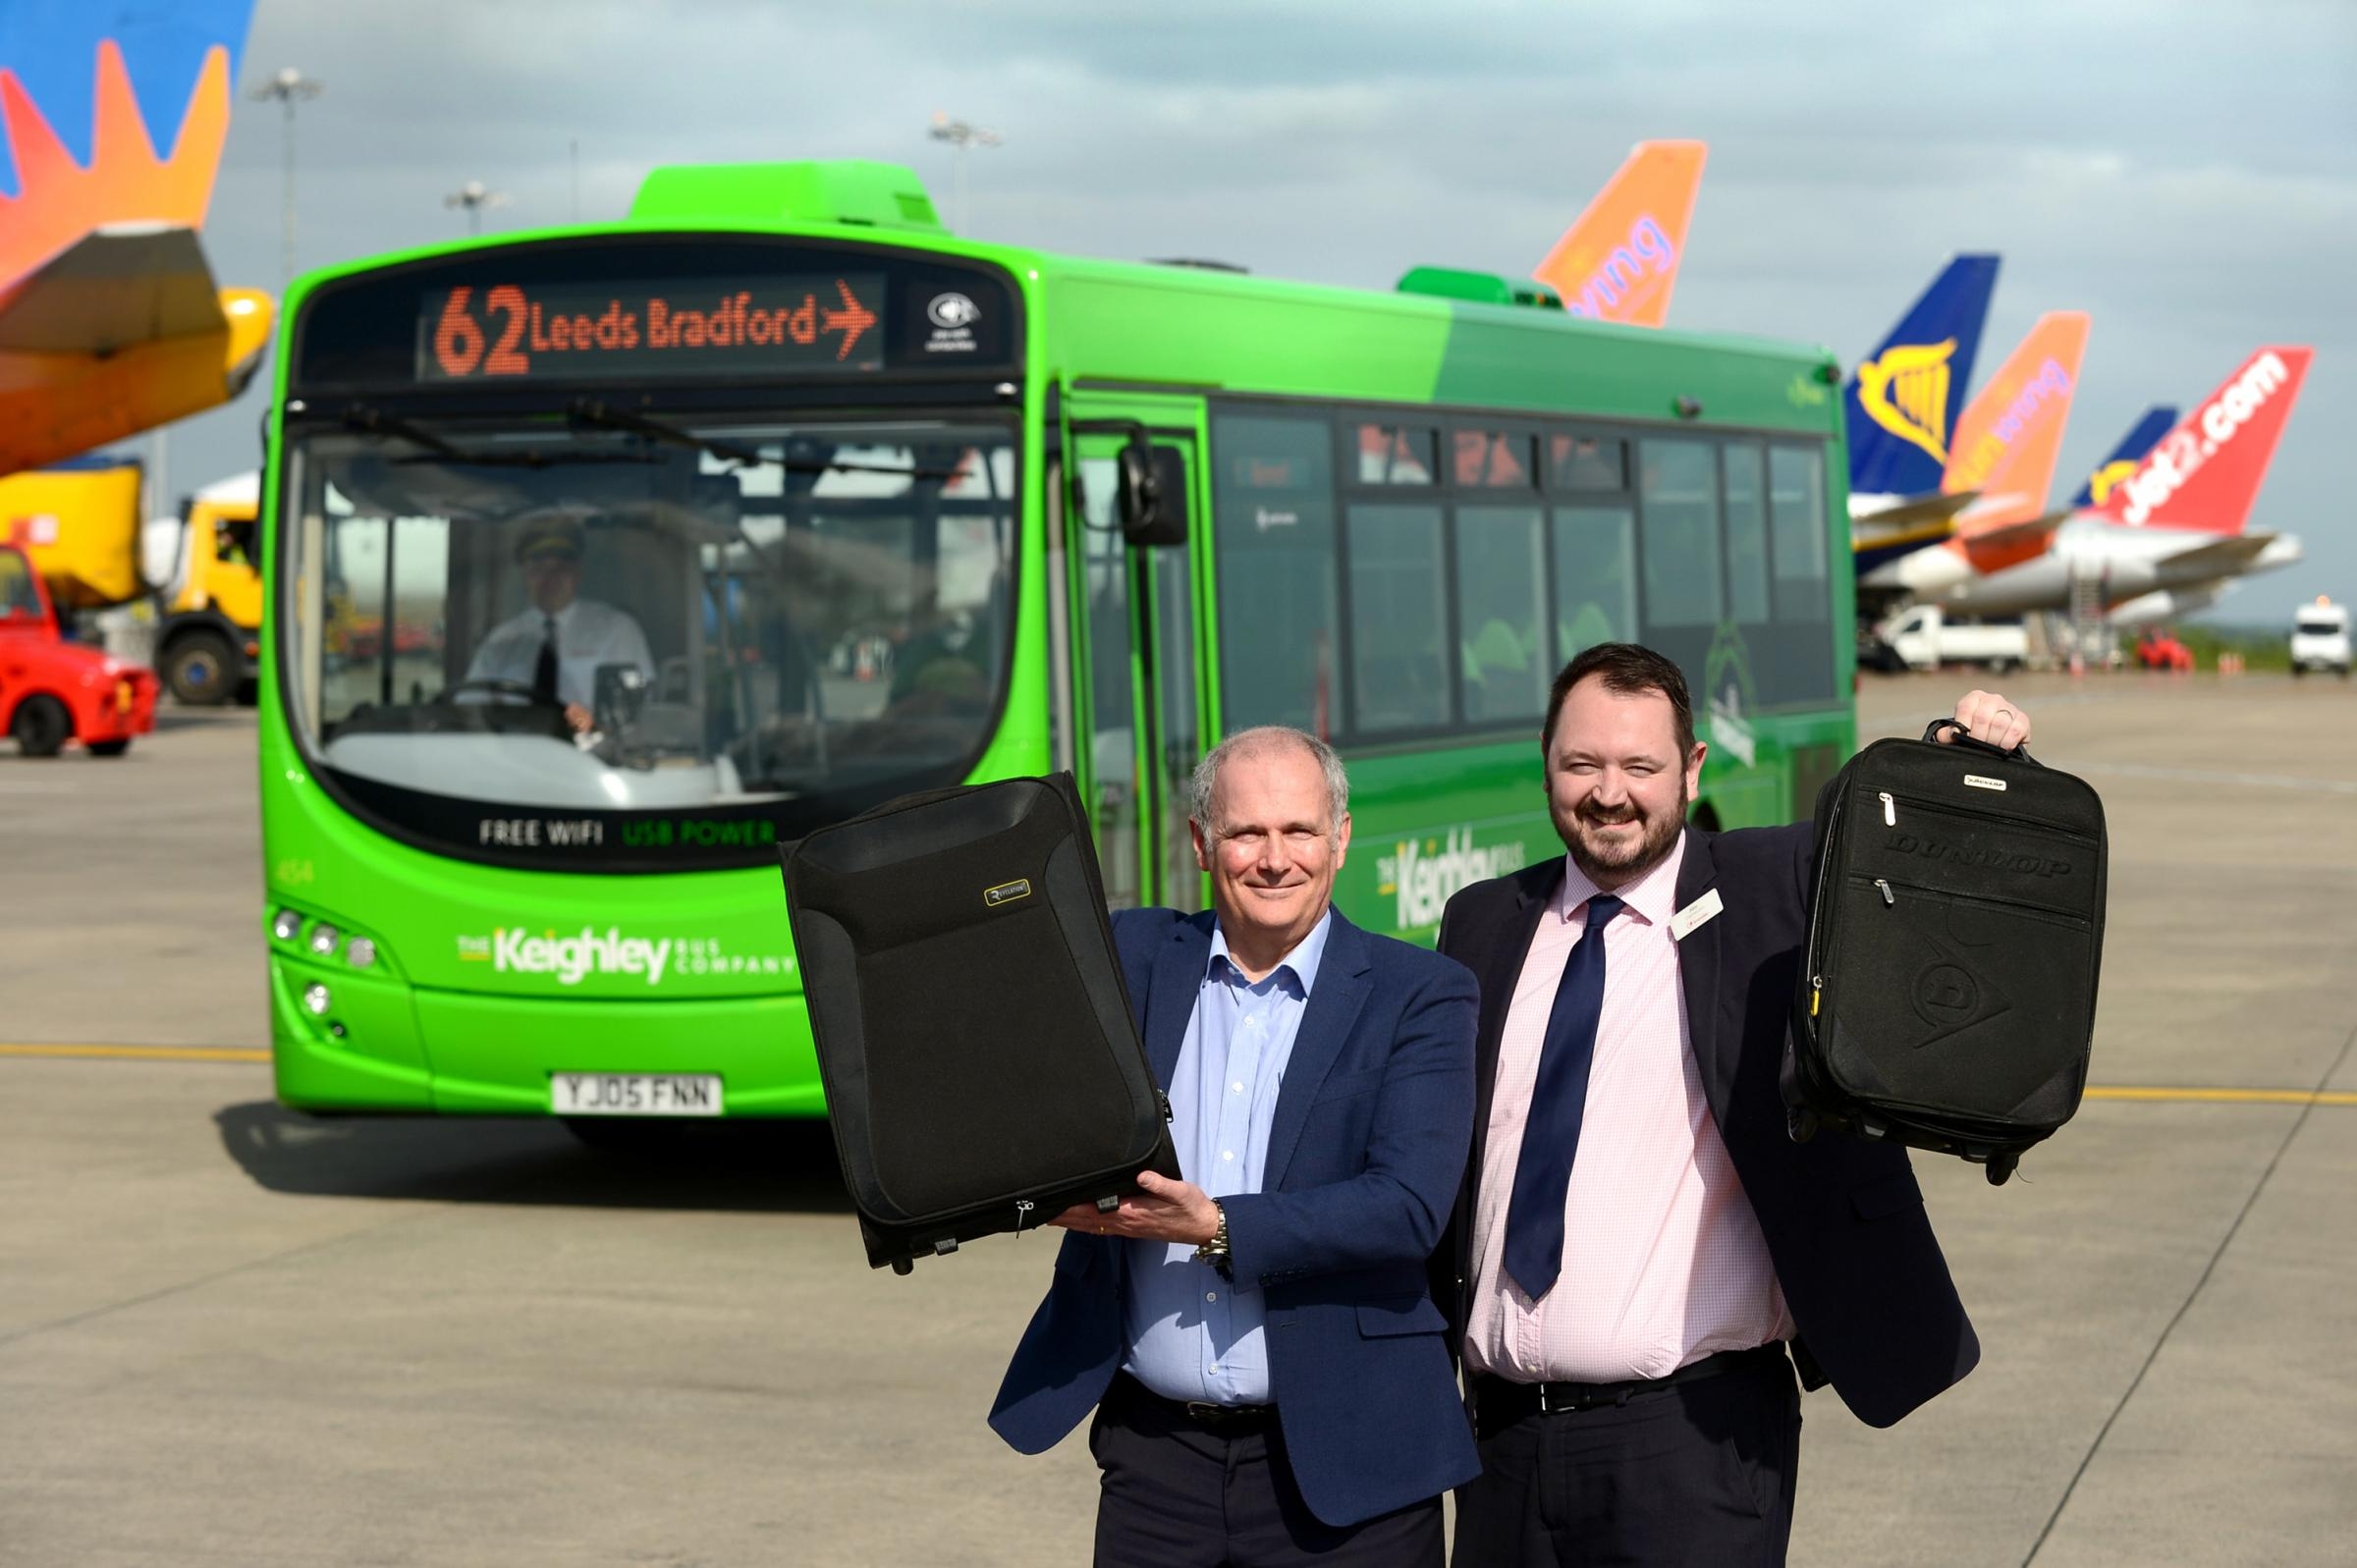 Launching the new 62 bus direct from Keighley to Leeds Bradford Airport is The Keighley Bus Company CEO Alex Hornby and Leeds Bradford Airport Aviation Development Director, Chris Sanders